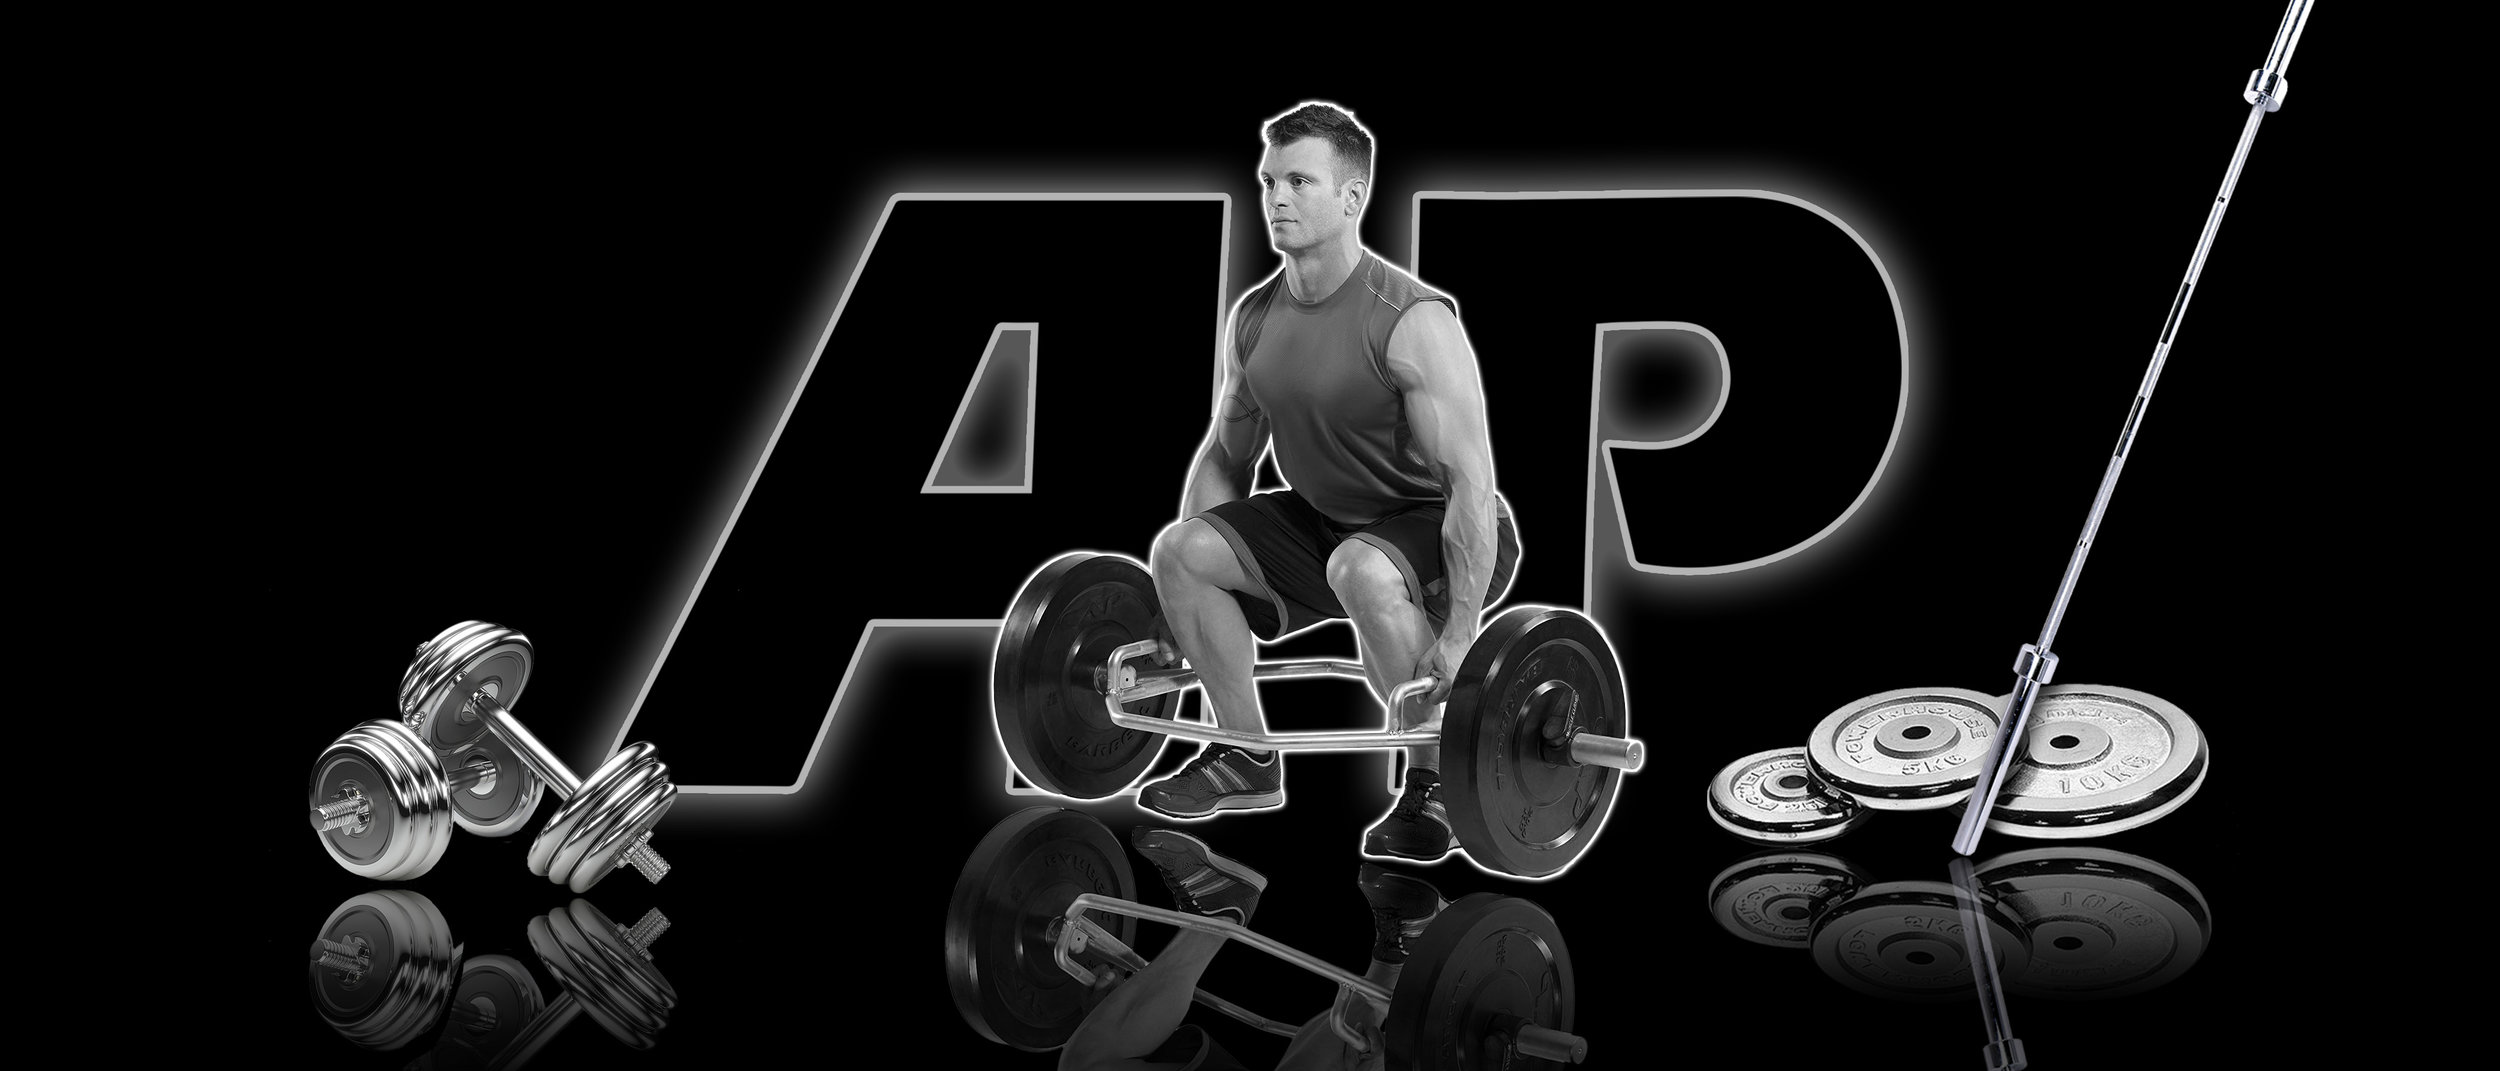 The Best Trap Bar Modification U2014 Advanced Human Performance Official  Website | Home Of Dr. Joel Seedman